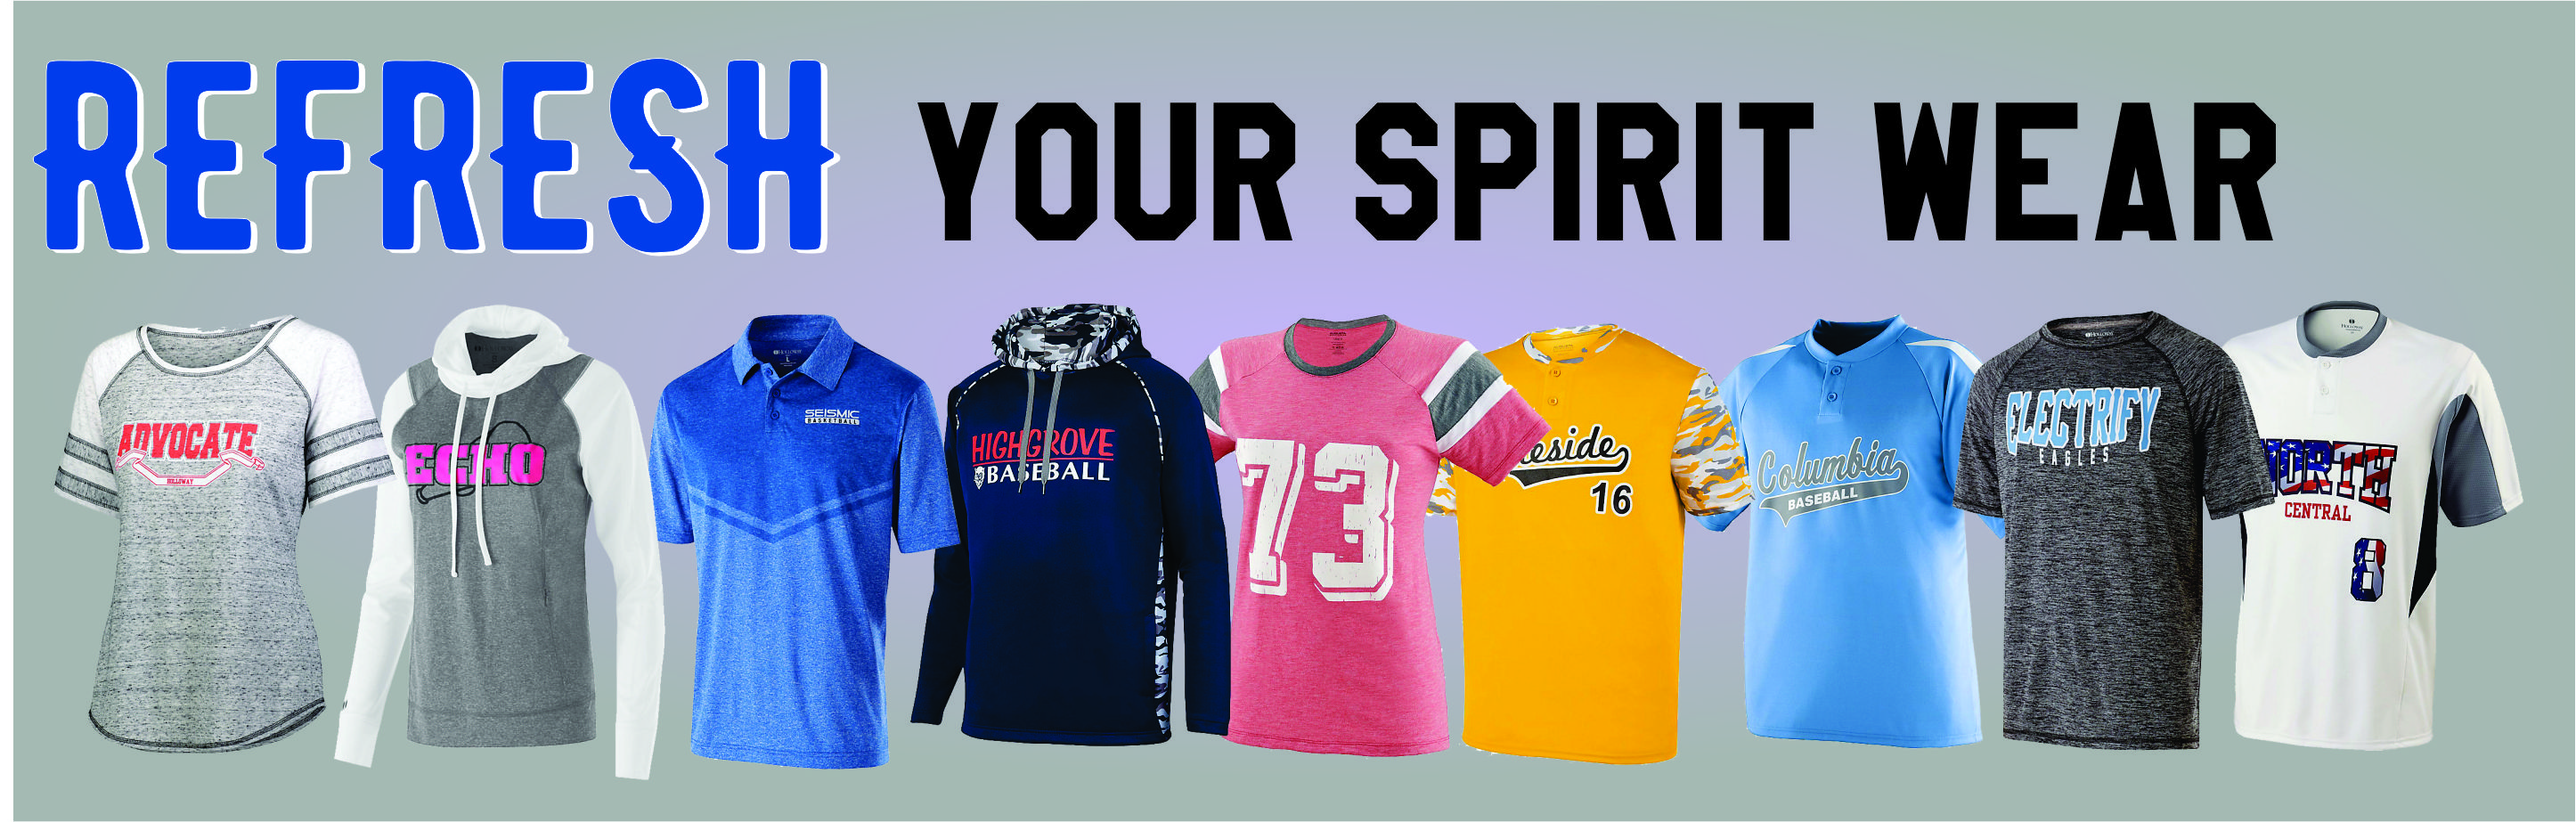 Refresh your spirit wear